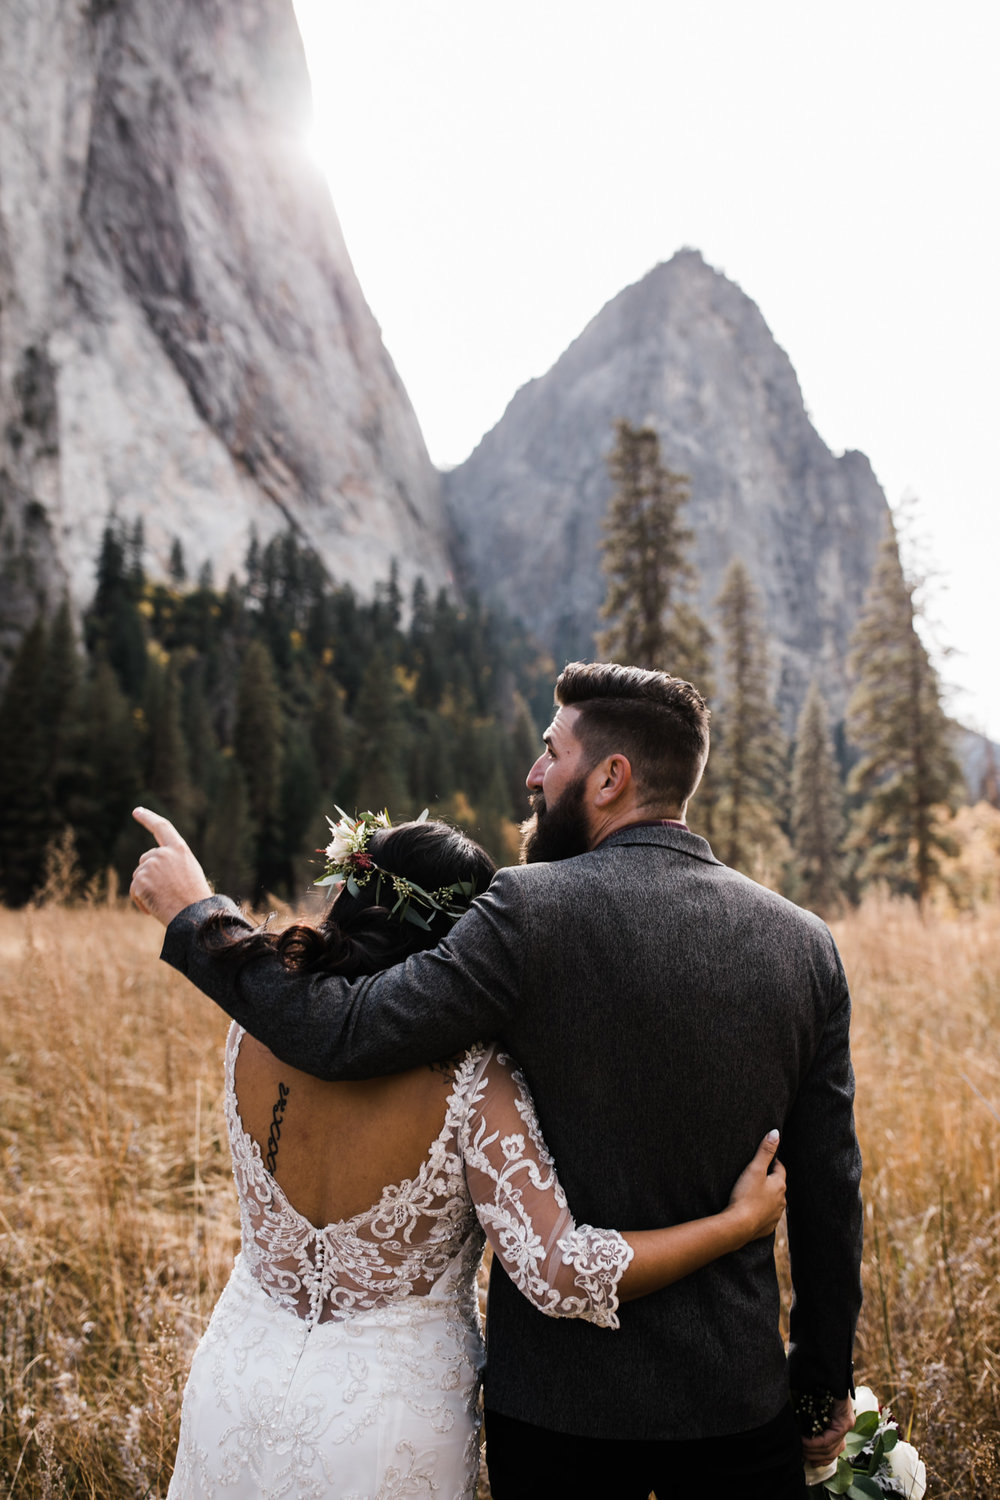 intimate fall wedding in yosemite national park | destination adventure wedding photographers | the hearnes adventure photography | www.thehearnes.com